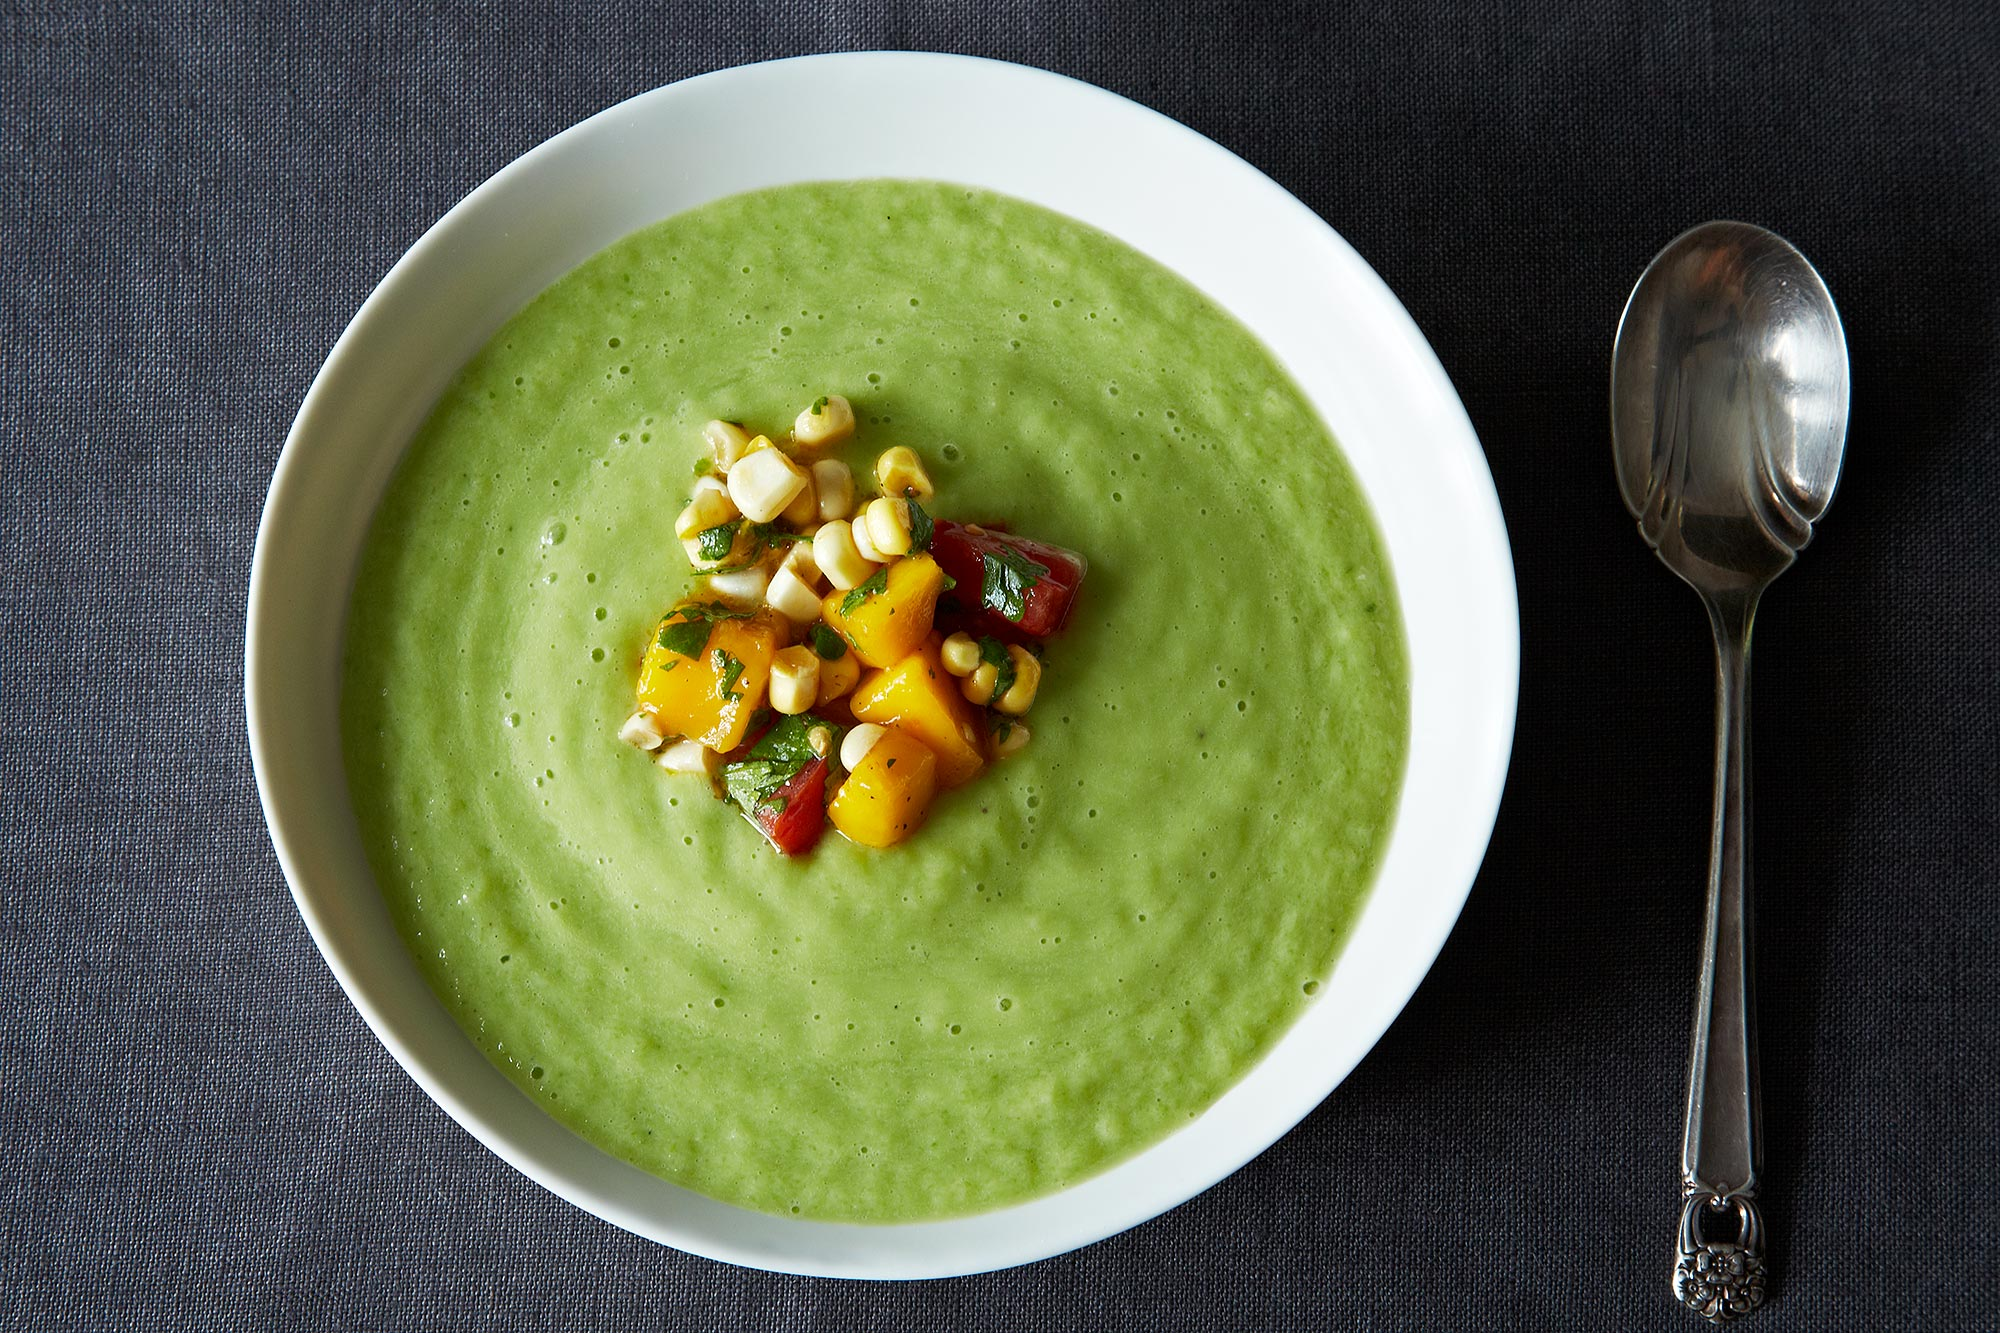 Chilled Cucumber and Avocado Soup with Mango Salsa Recipe